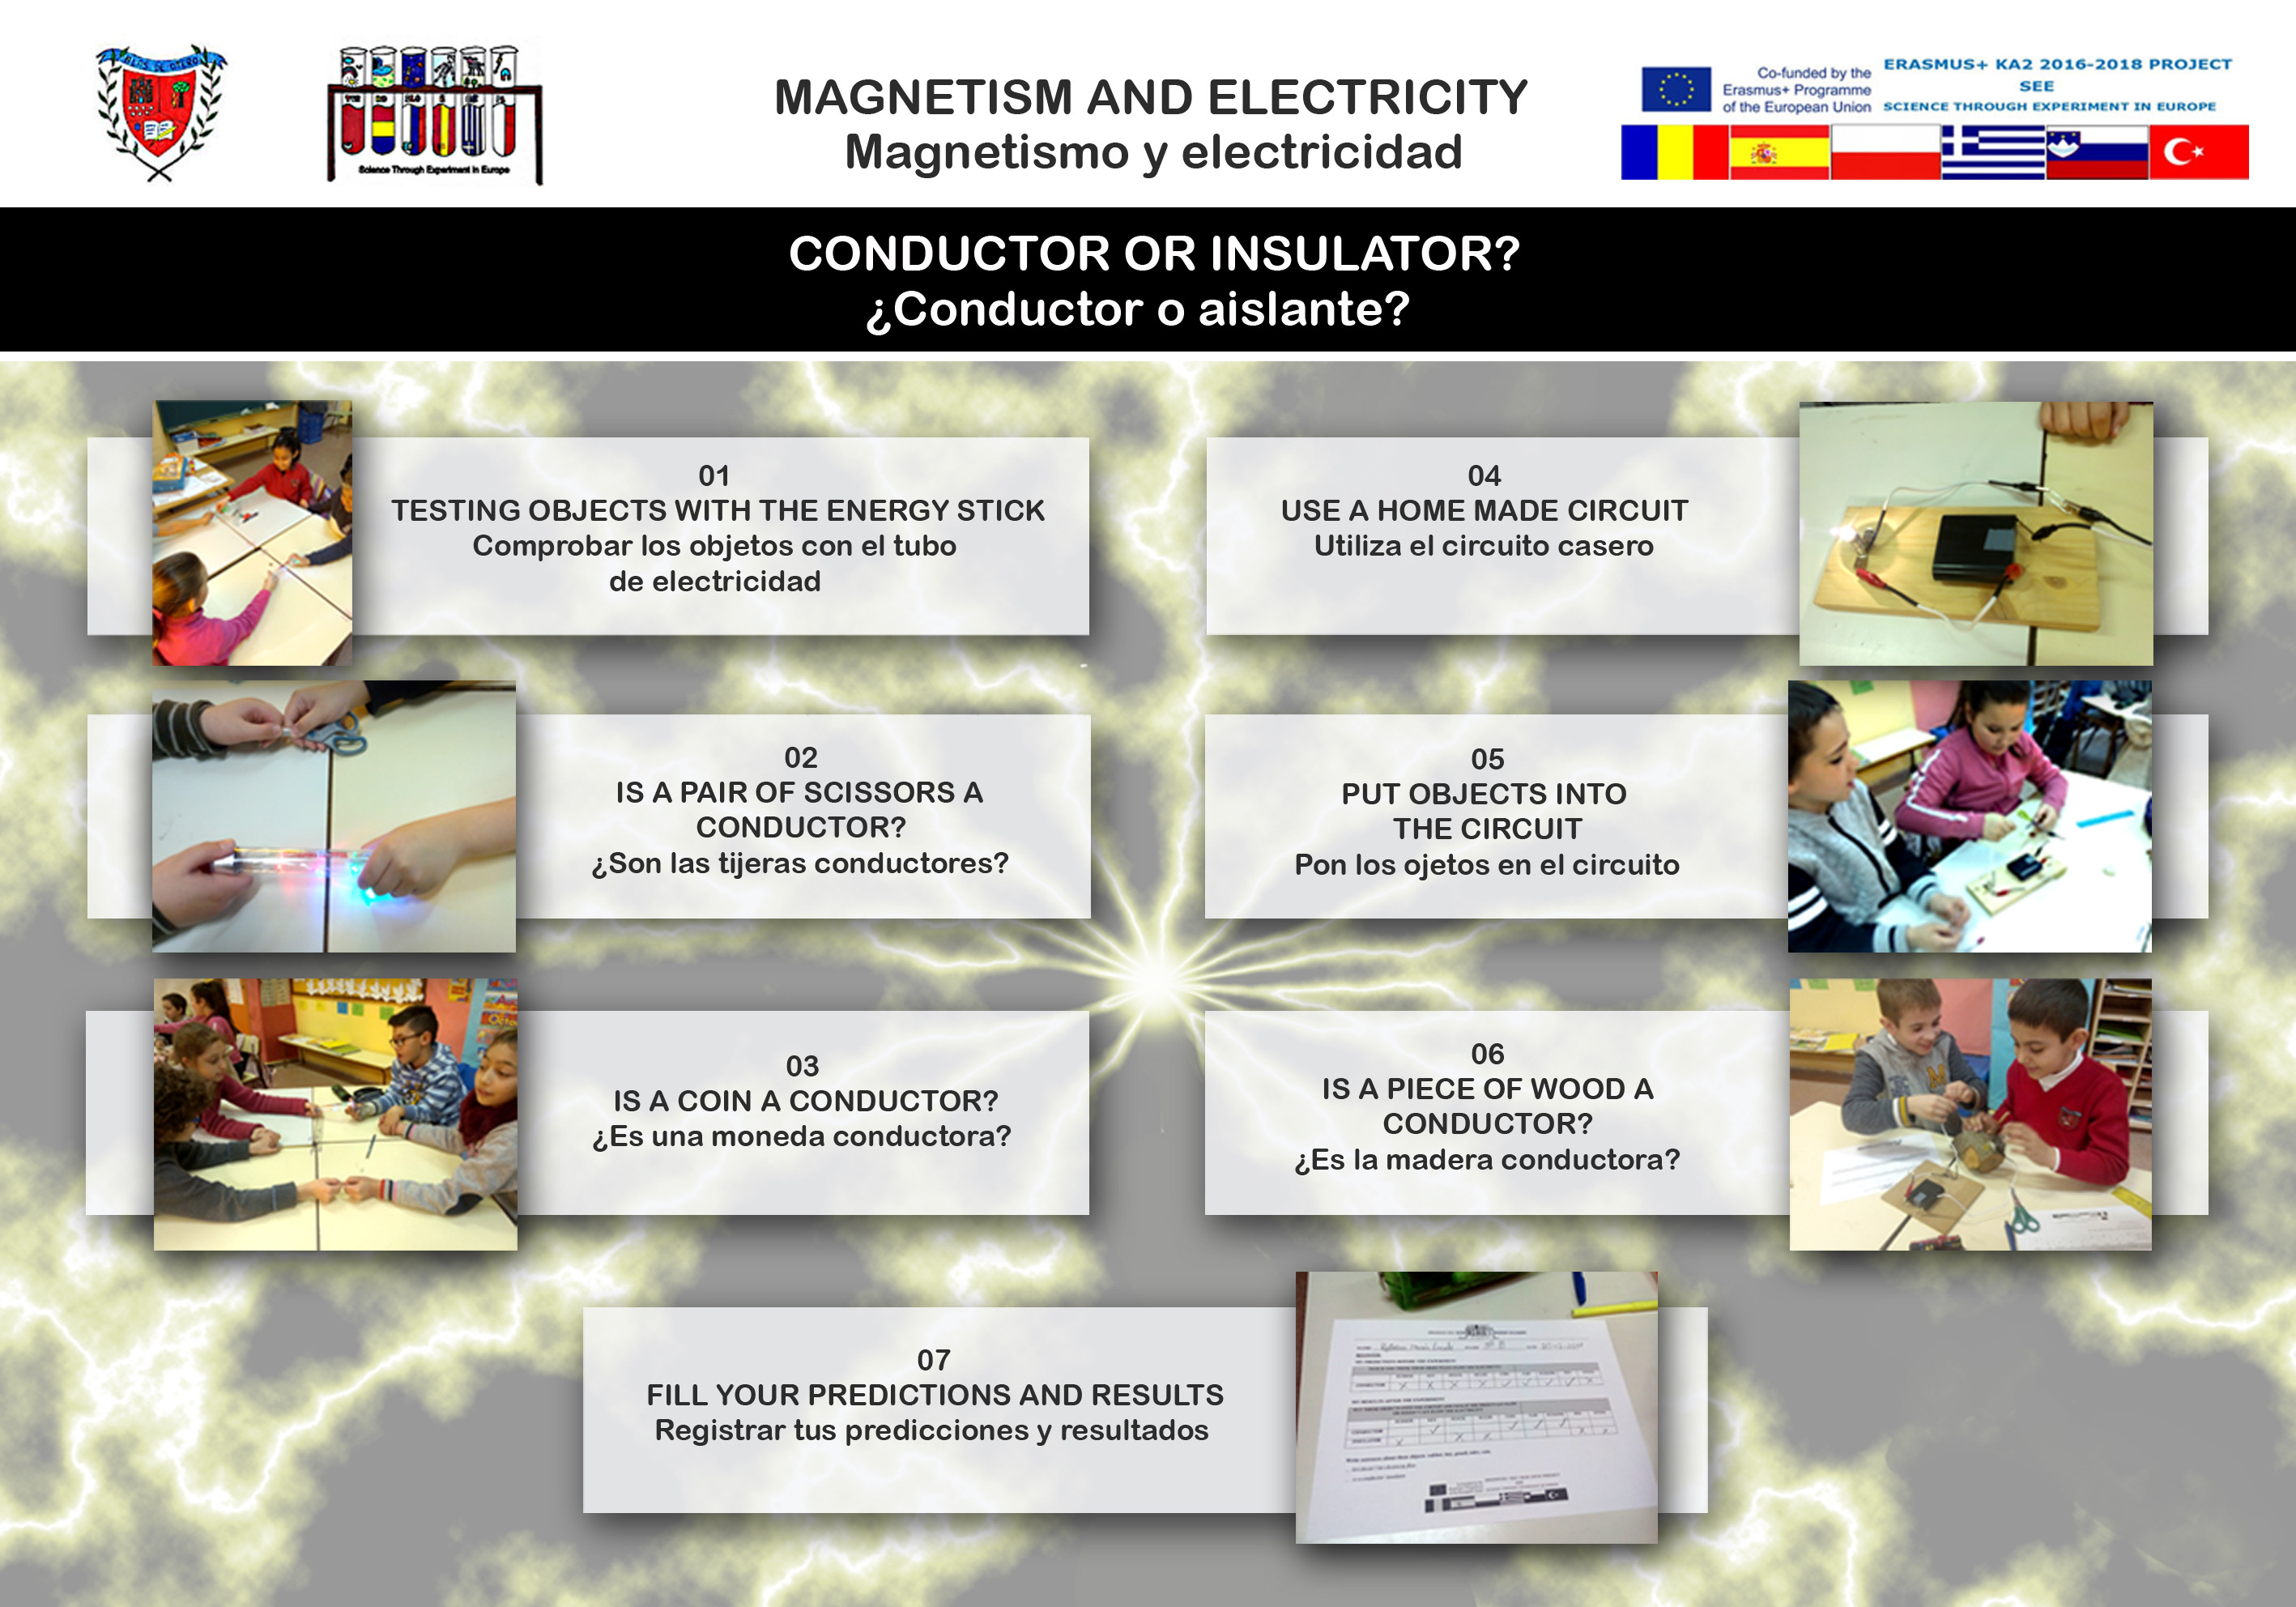 Magnetism and electricity experiment 02 Conductor or insulator?